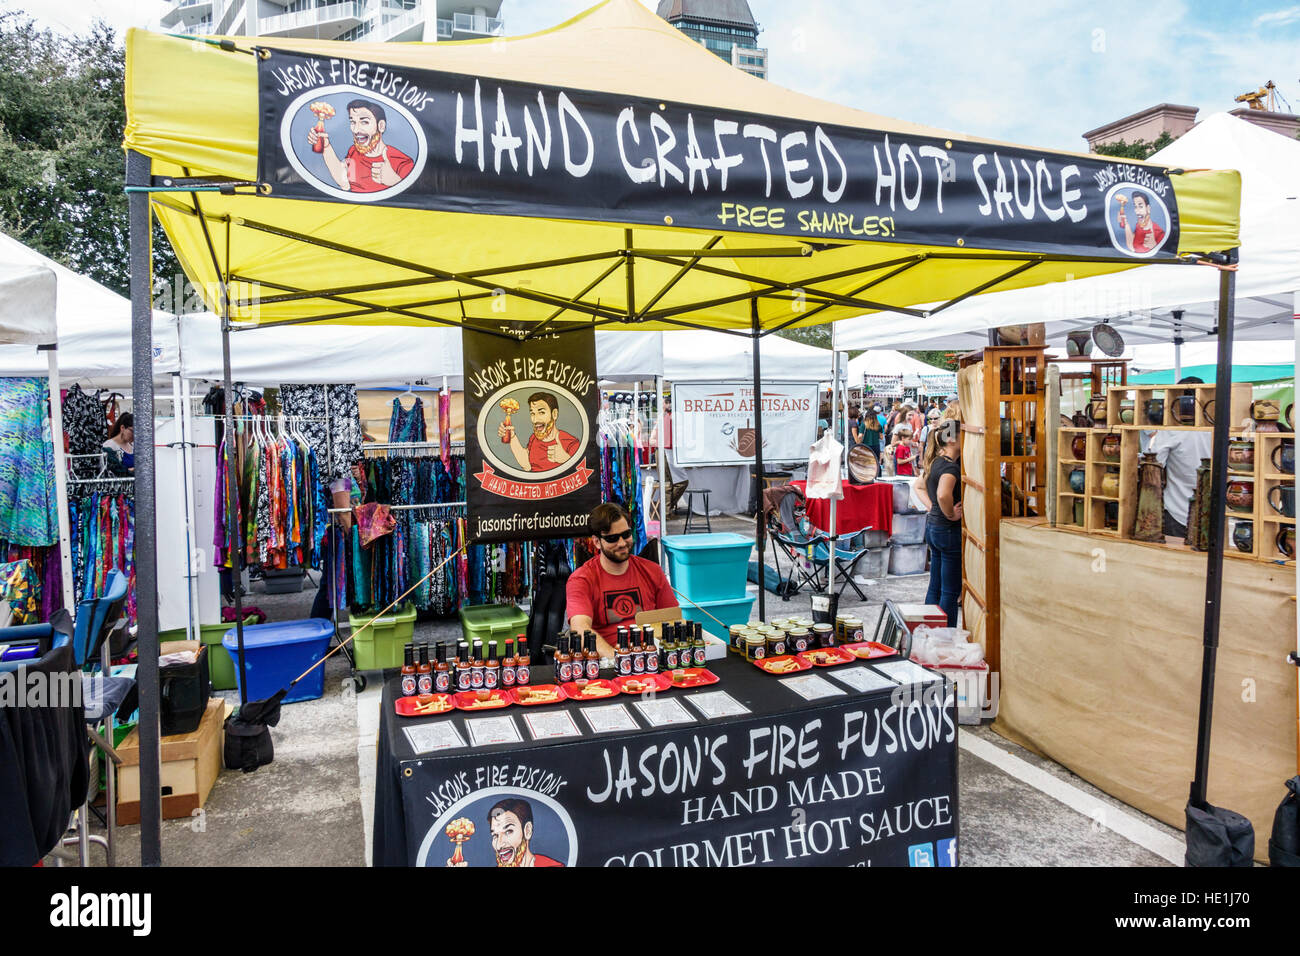 St. Saint Petersburg Florida Saturday Morning Market vendors stalls shopping food artisan gourmet farmers hand crafted - Stock Image